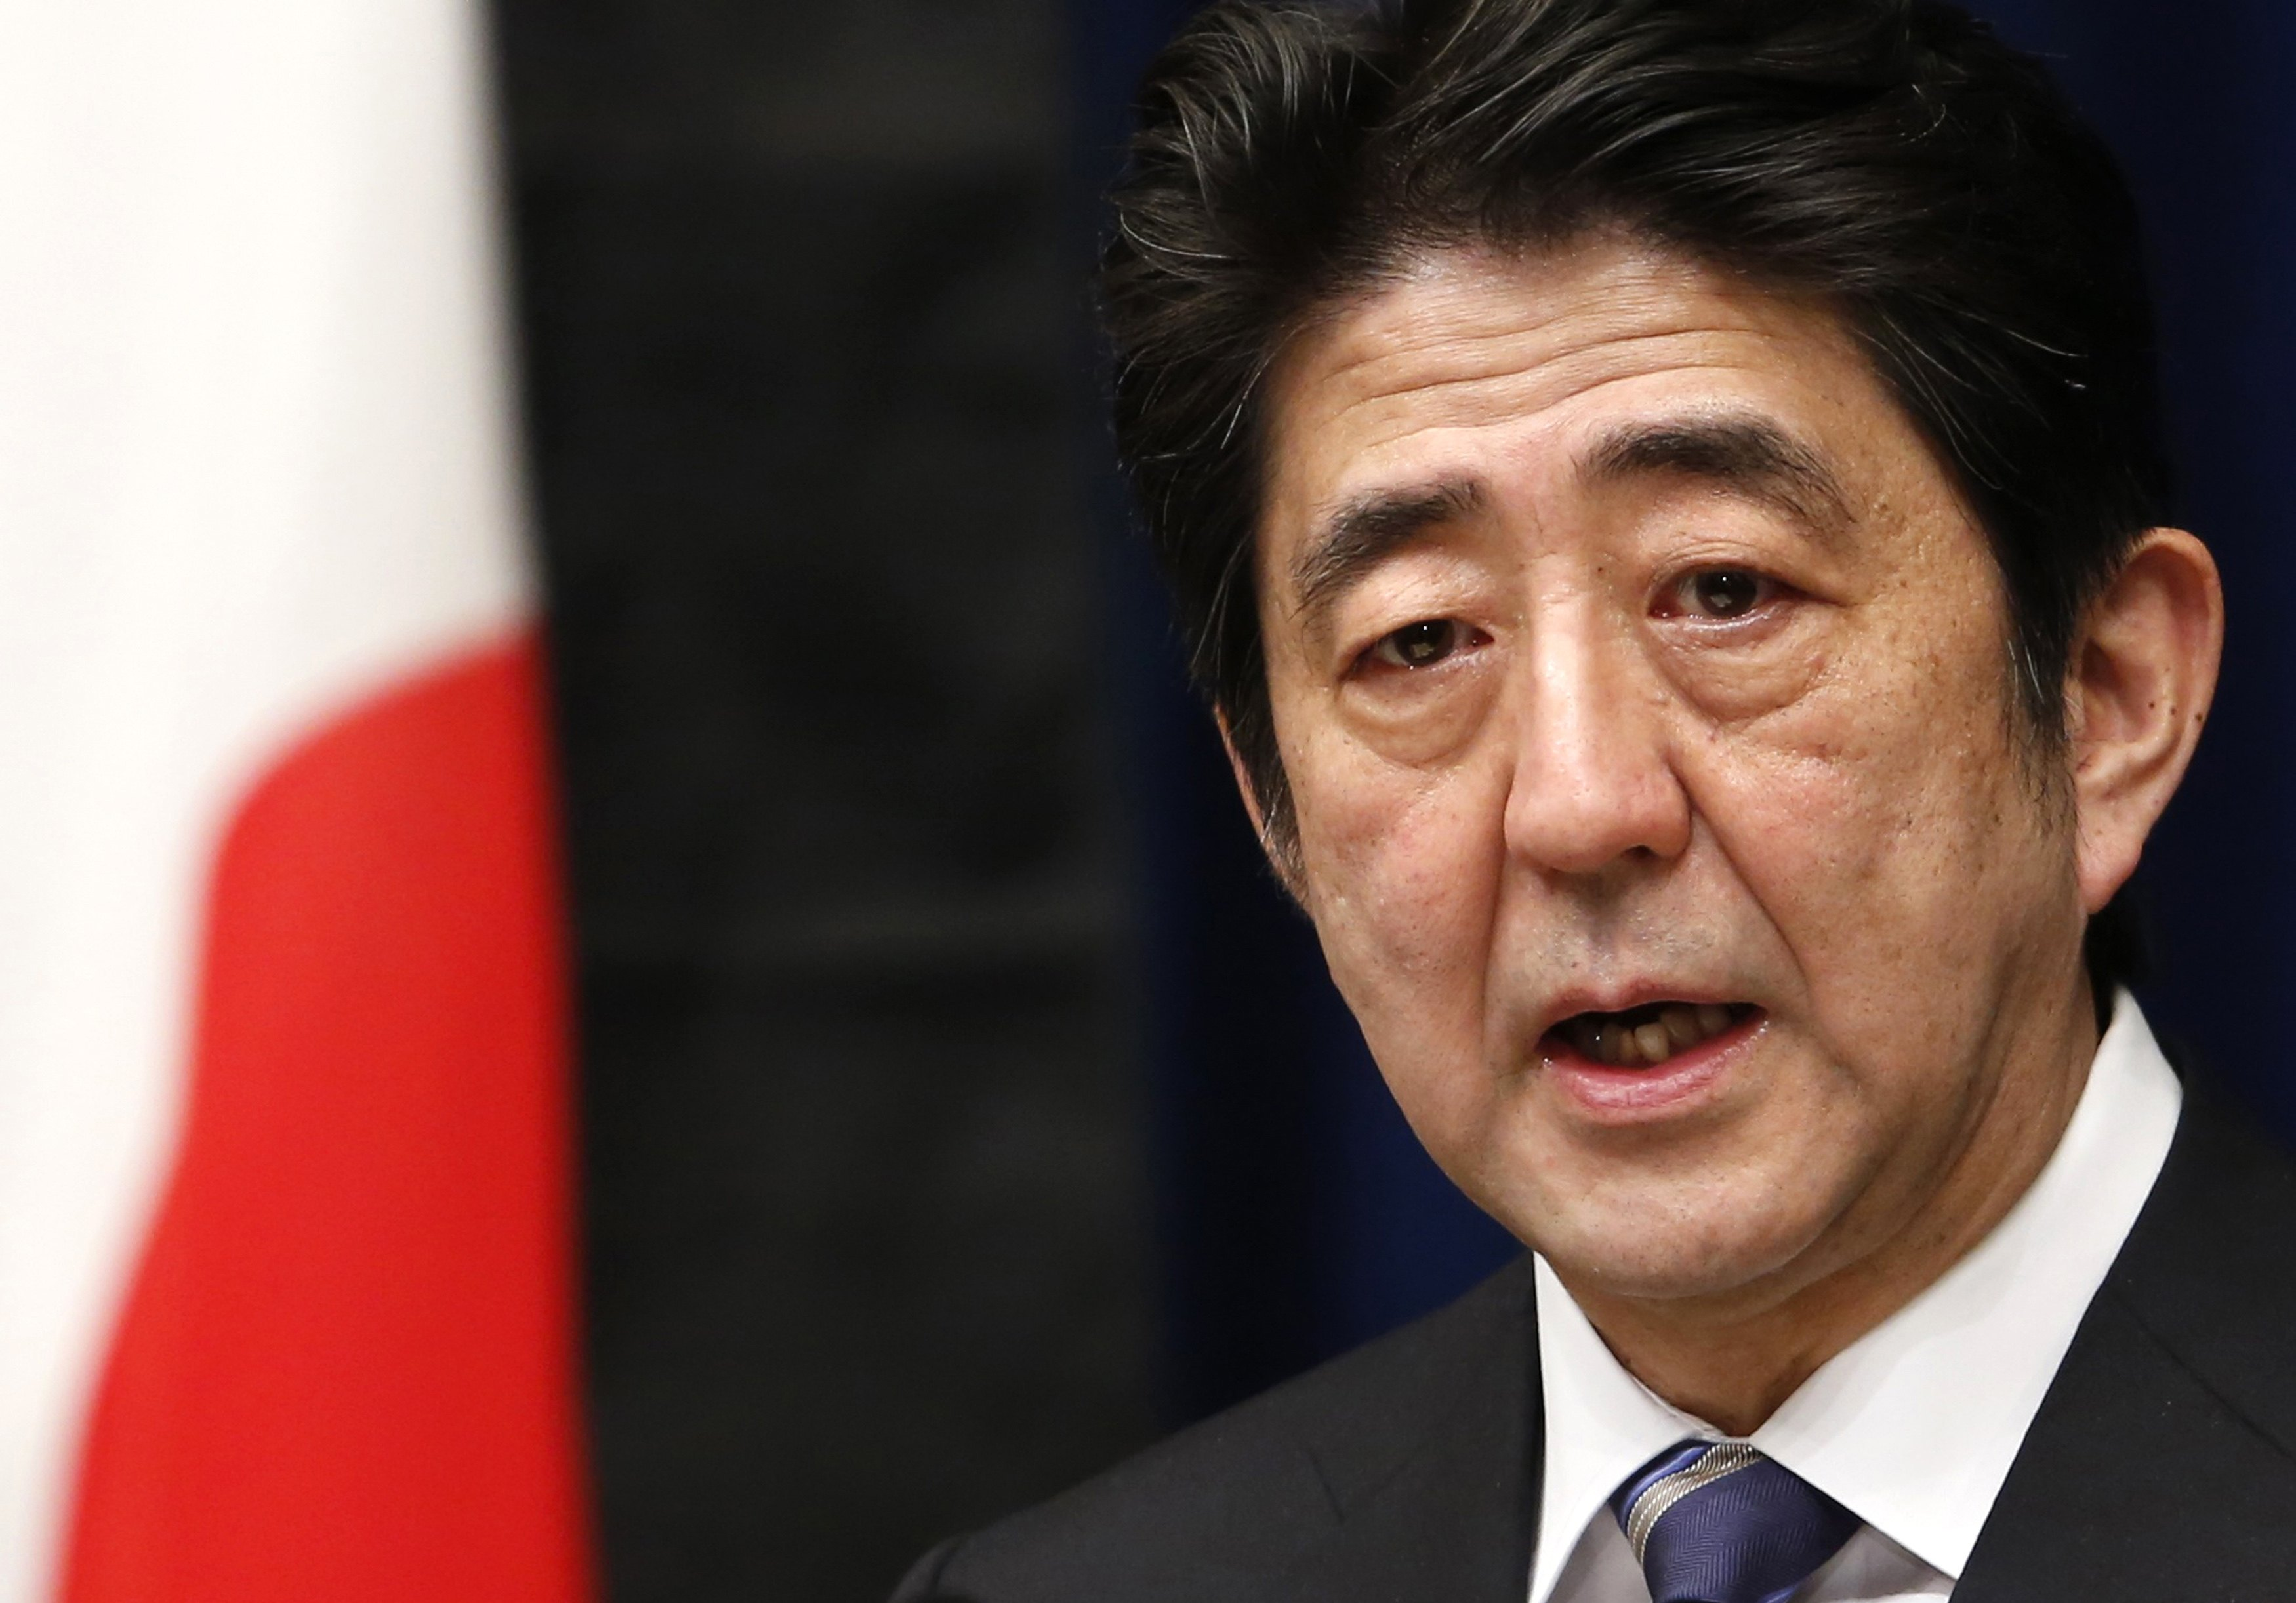 File photo Japan's PM Shinzo Abe speaking next to the national flag, which is hung with a black ribbon as a symbol of mourning for victims of the March 11, 2011 earthquake and tsunami, in Tokyo